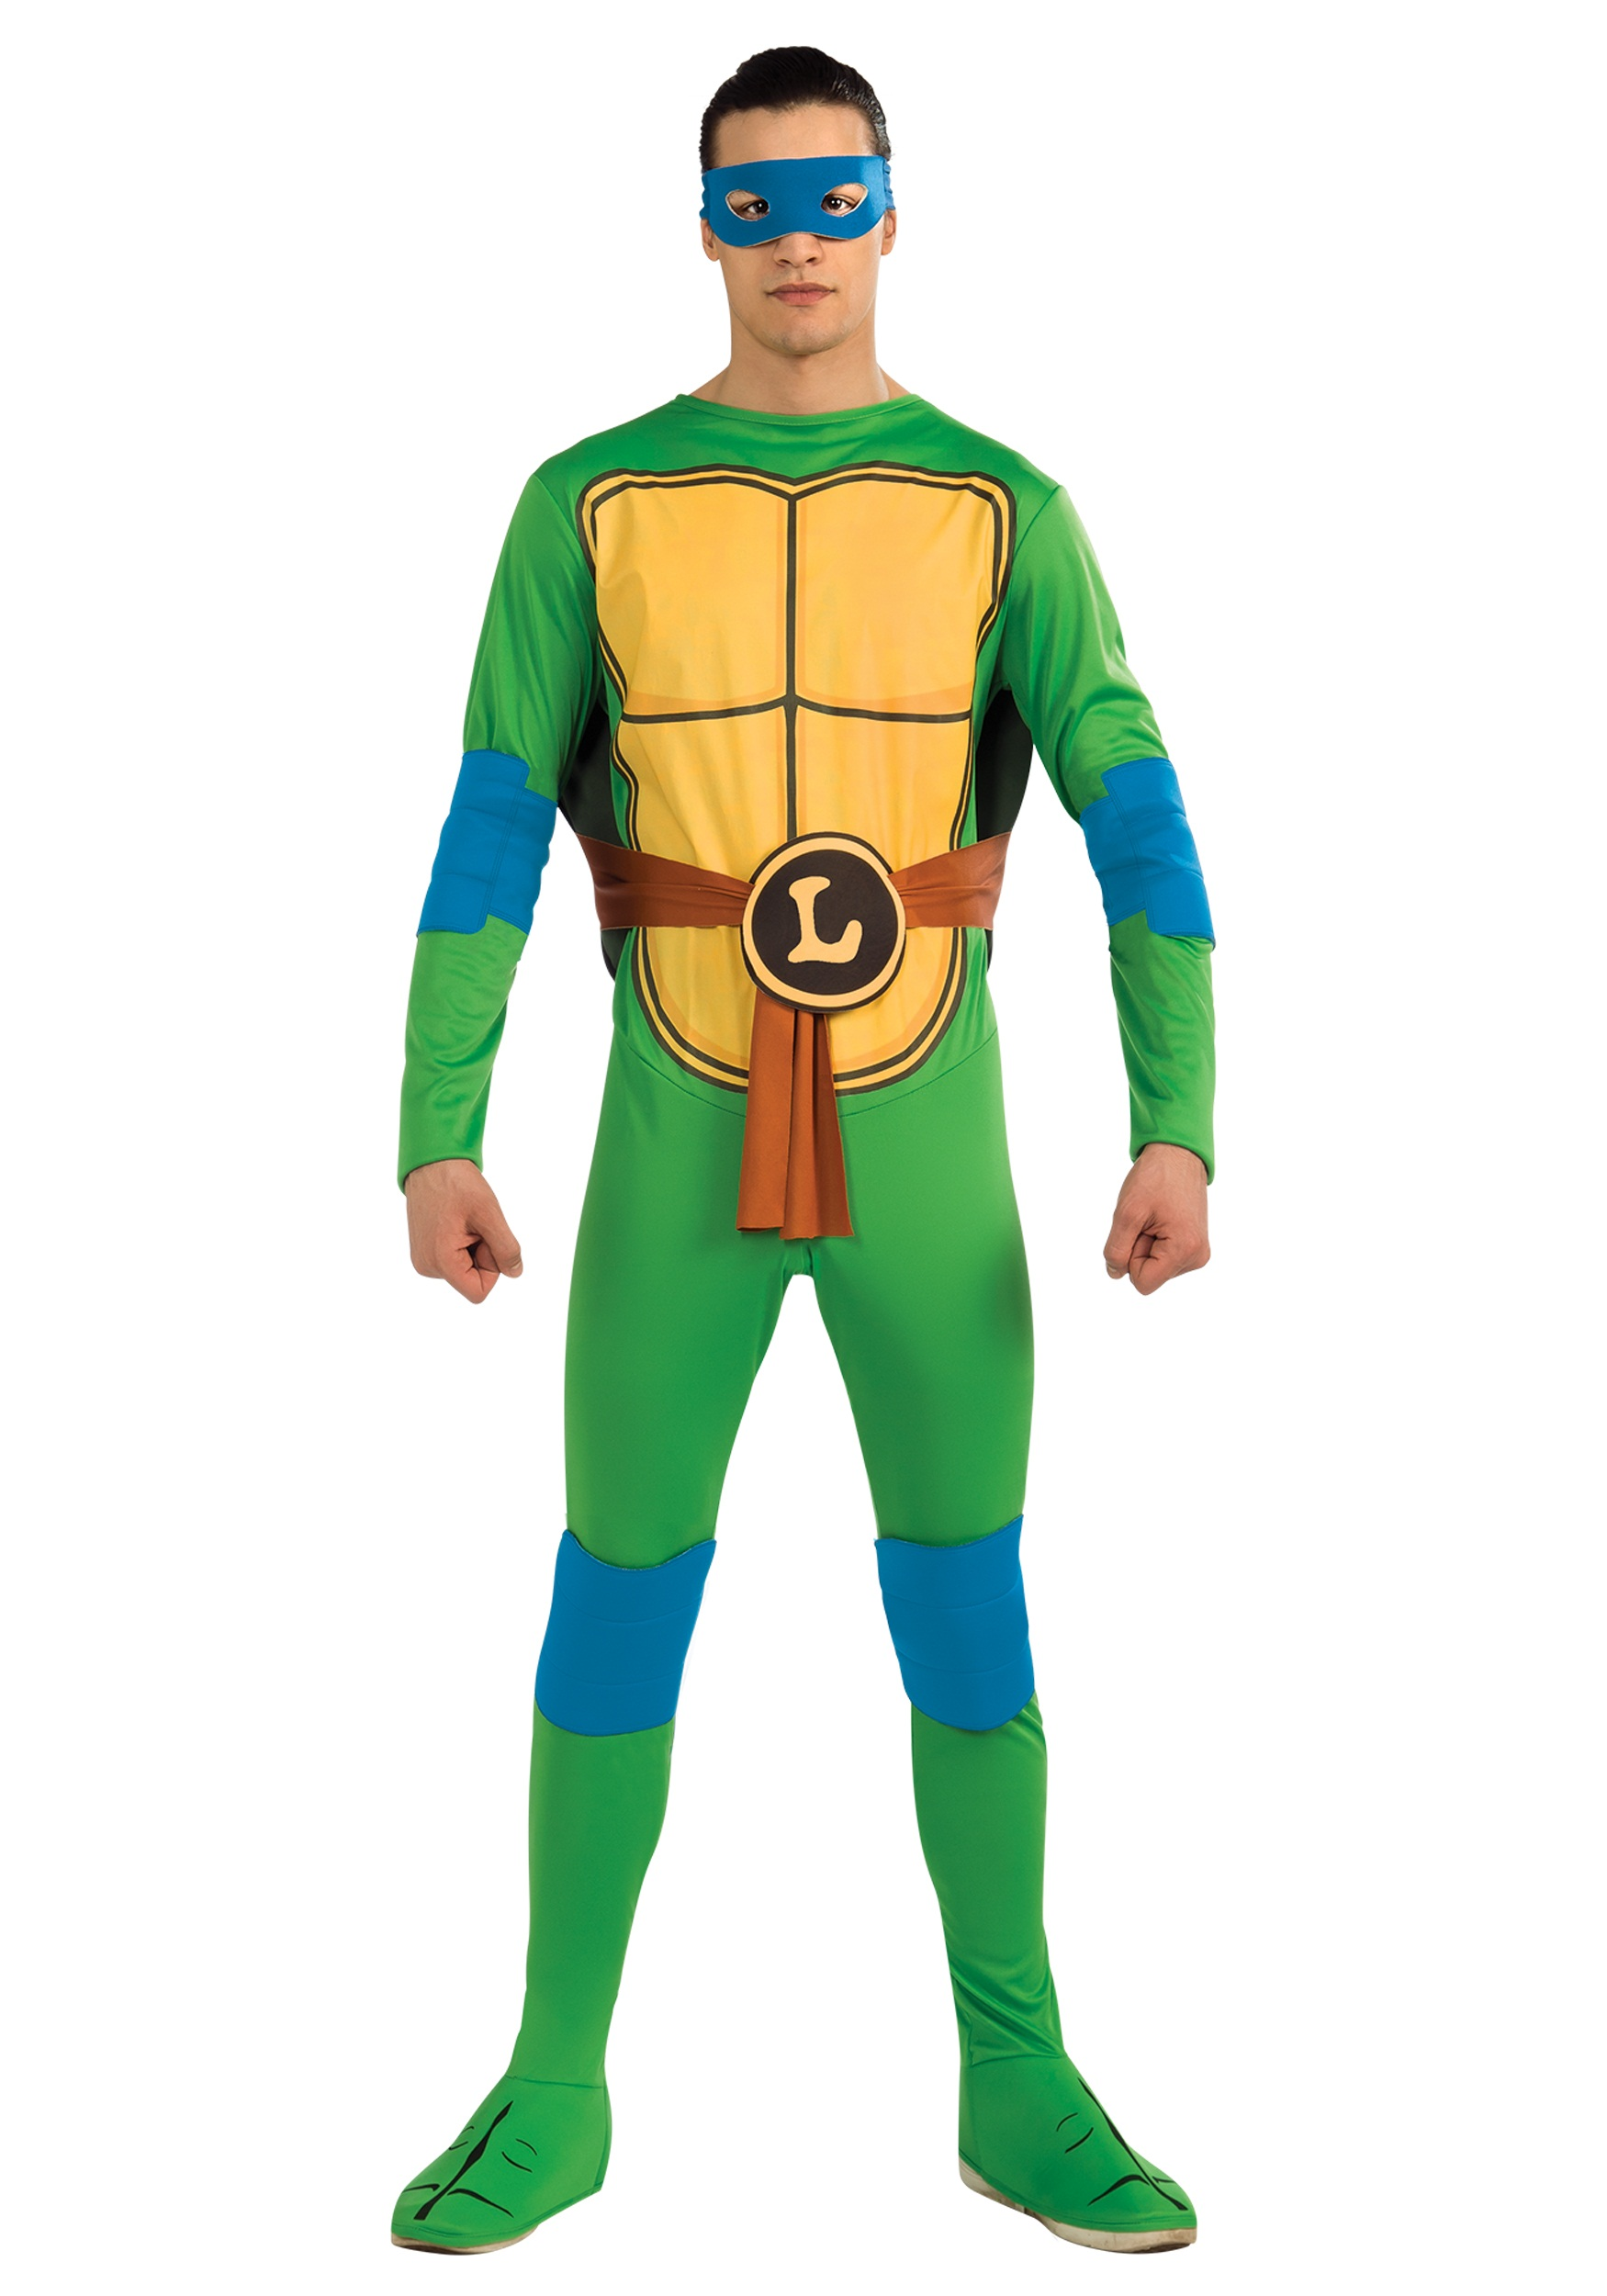 Superb Adult Classic TMNT Leonardo Costume